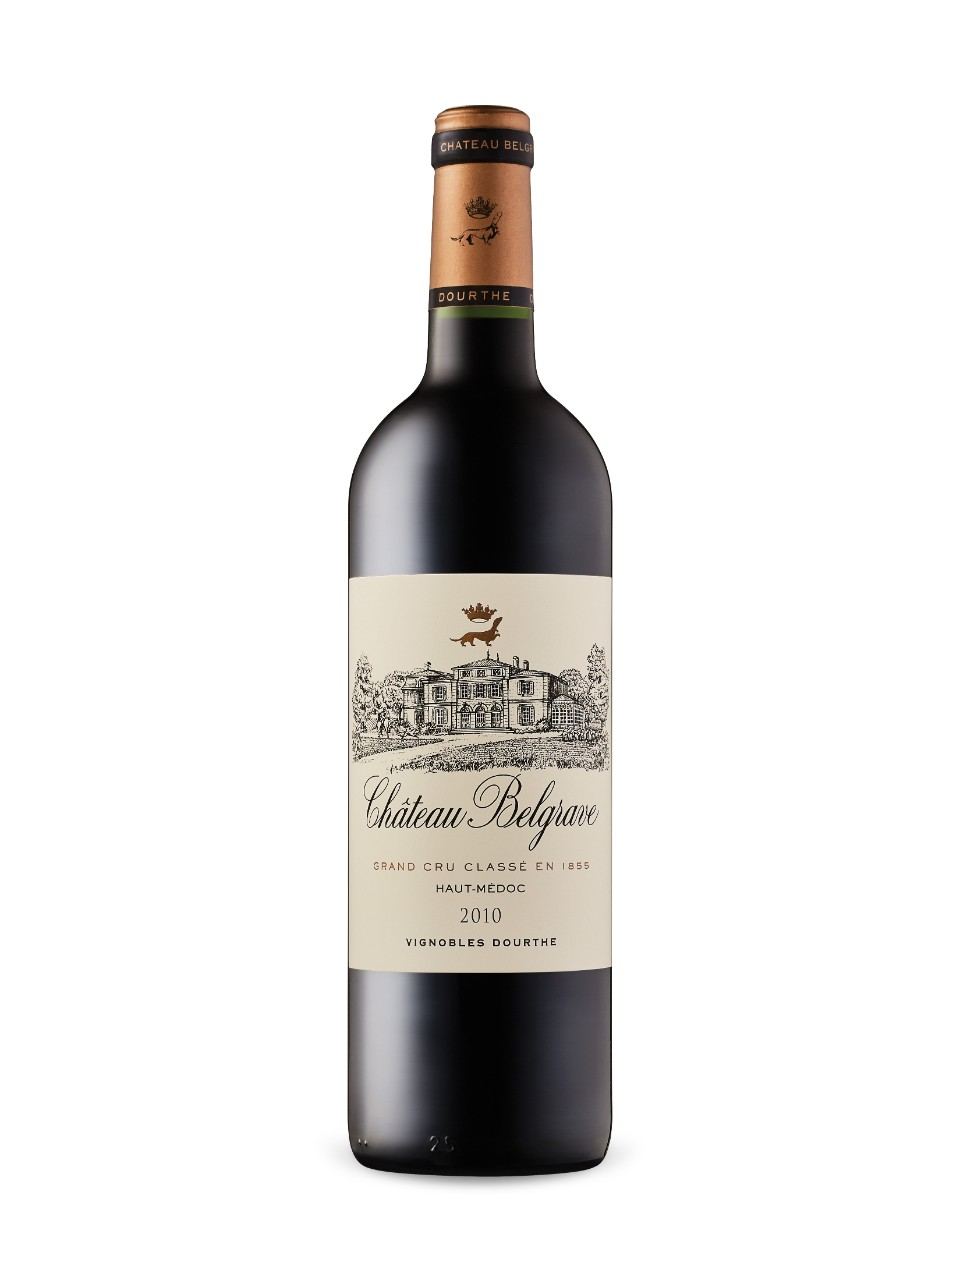 Château Belgrave 2015 from LCBO